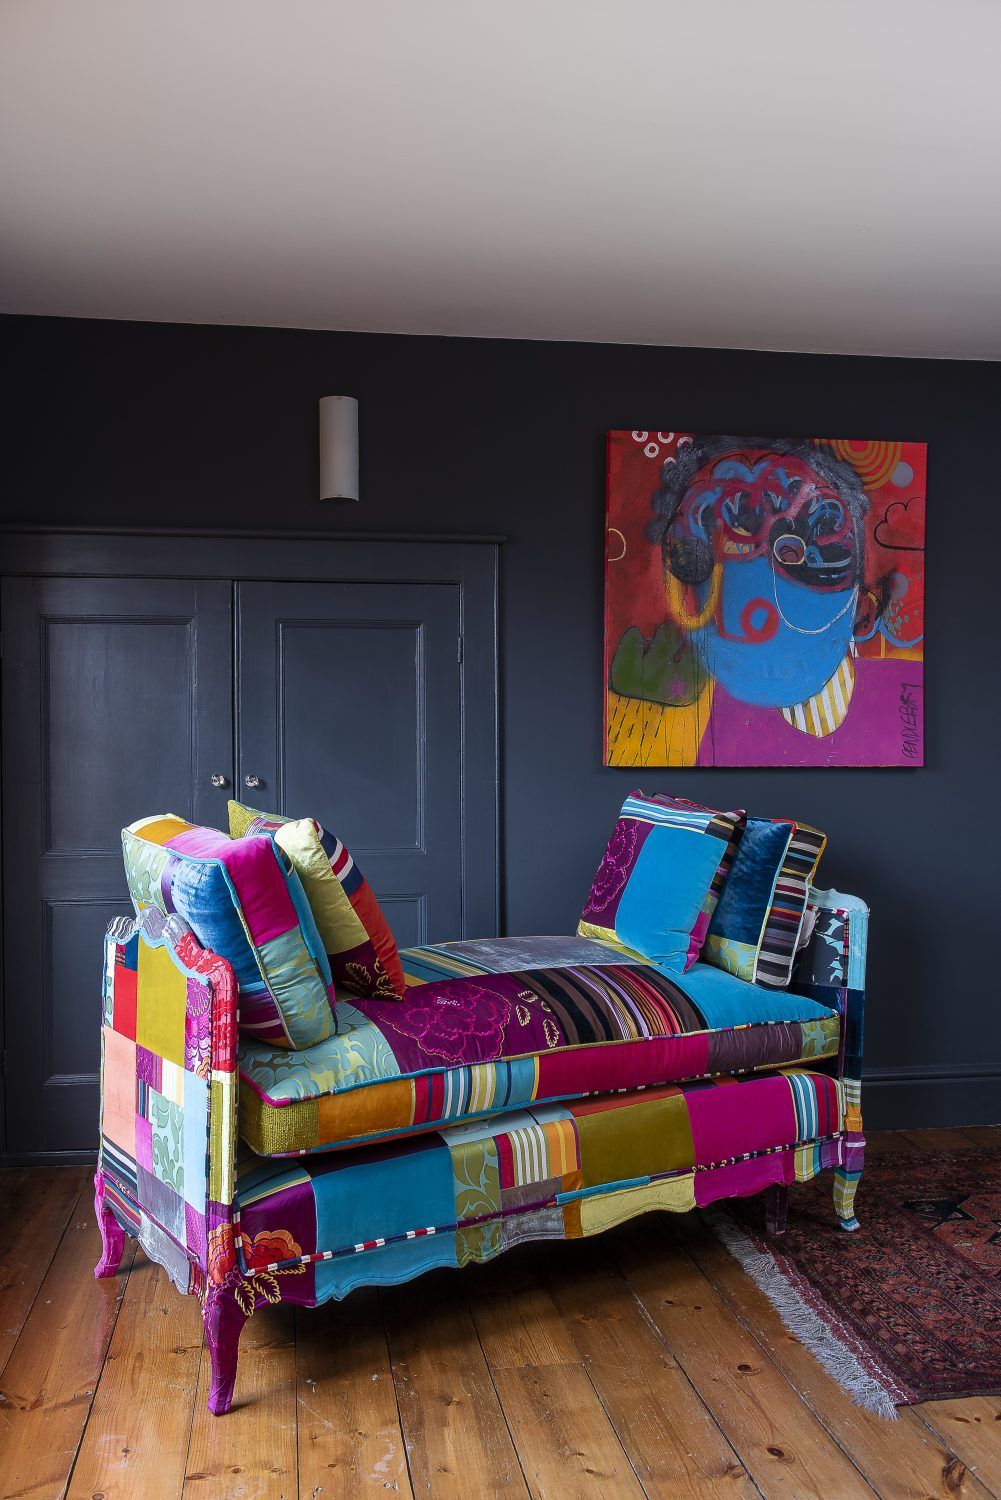 The brightly coloured patchwork day bed was created, bespoke, for Jane by Squint in Shoreditch. Hanging on the wall behind is an equally bright painting by Nathan Pendlebury